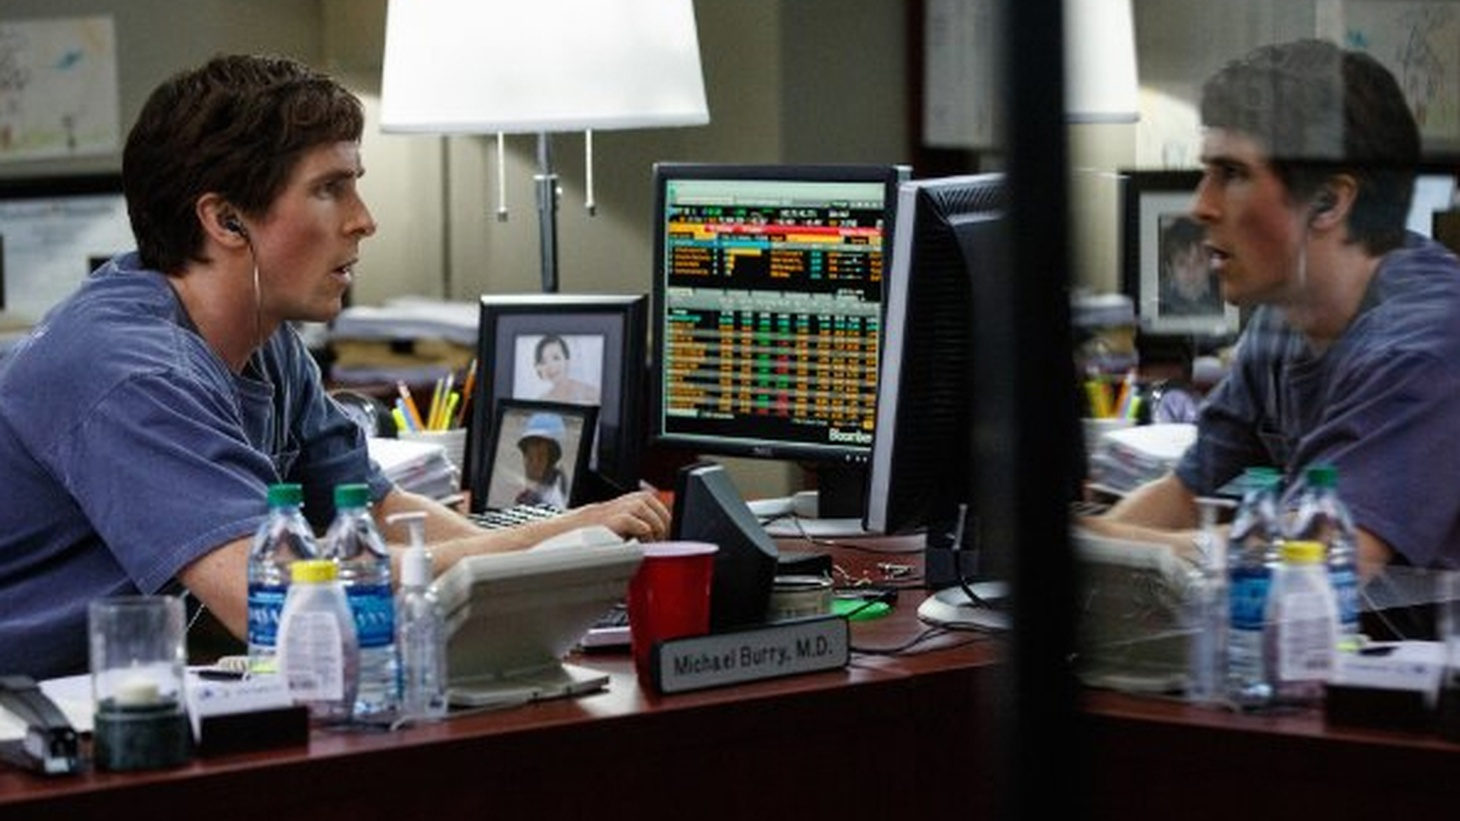 What gives The Big Short its surprising resonance is the breadth of its comic vision, which makes room for collateral tragedy.